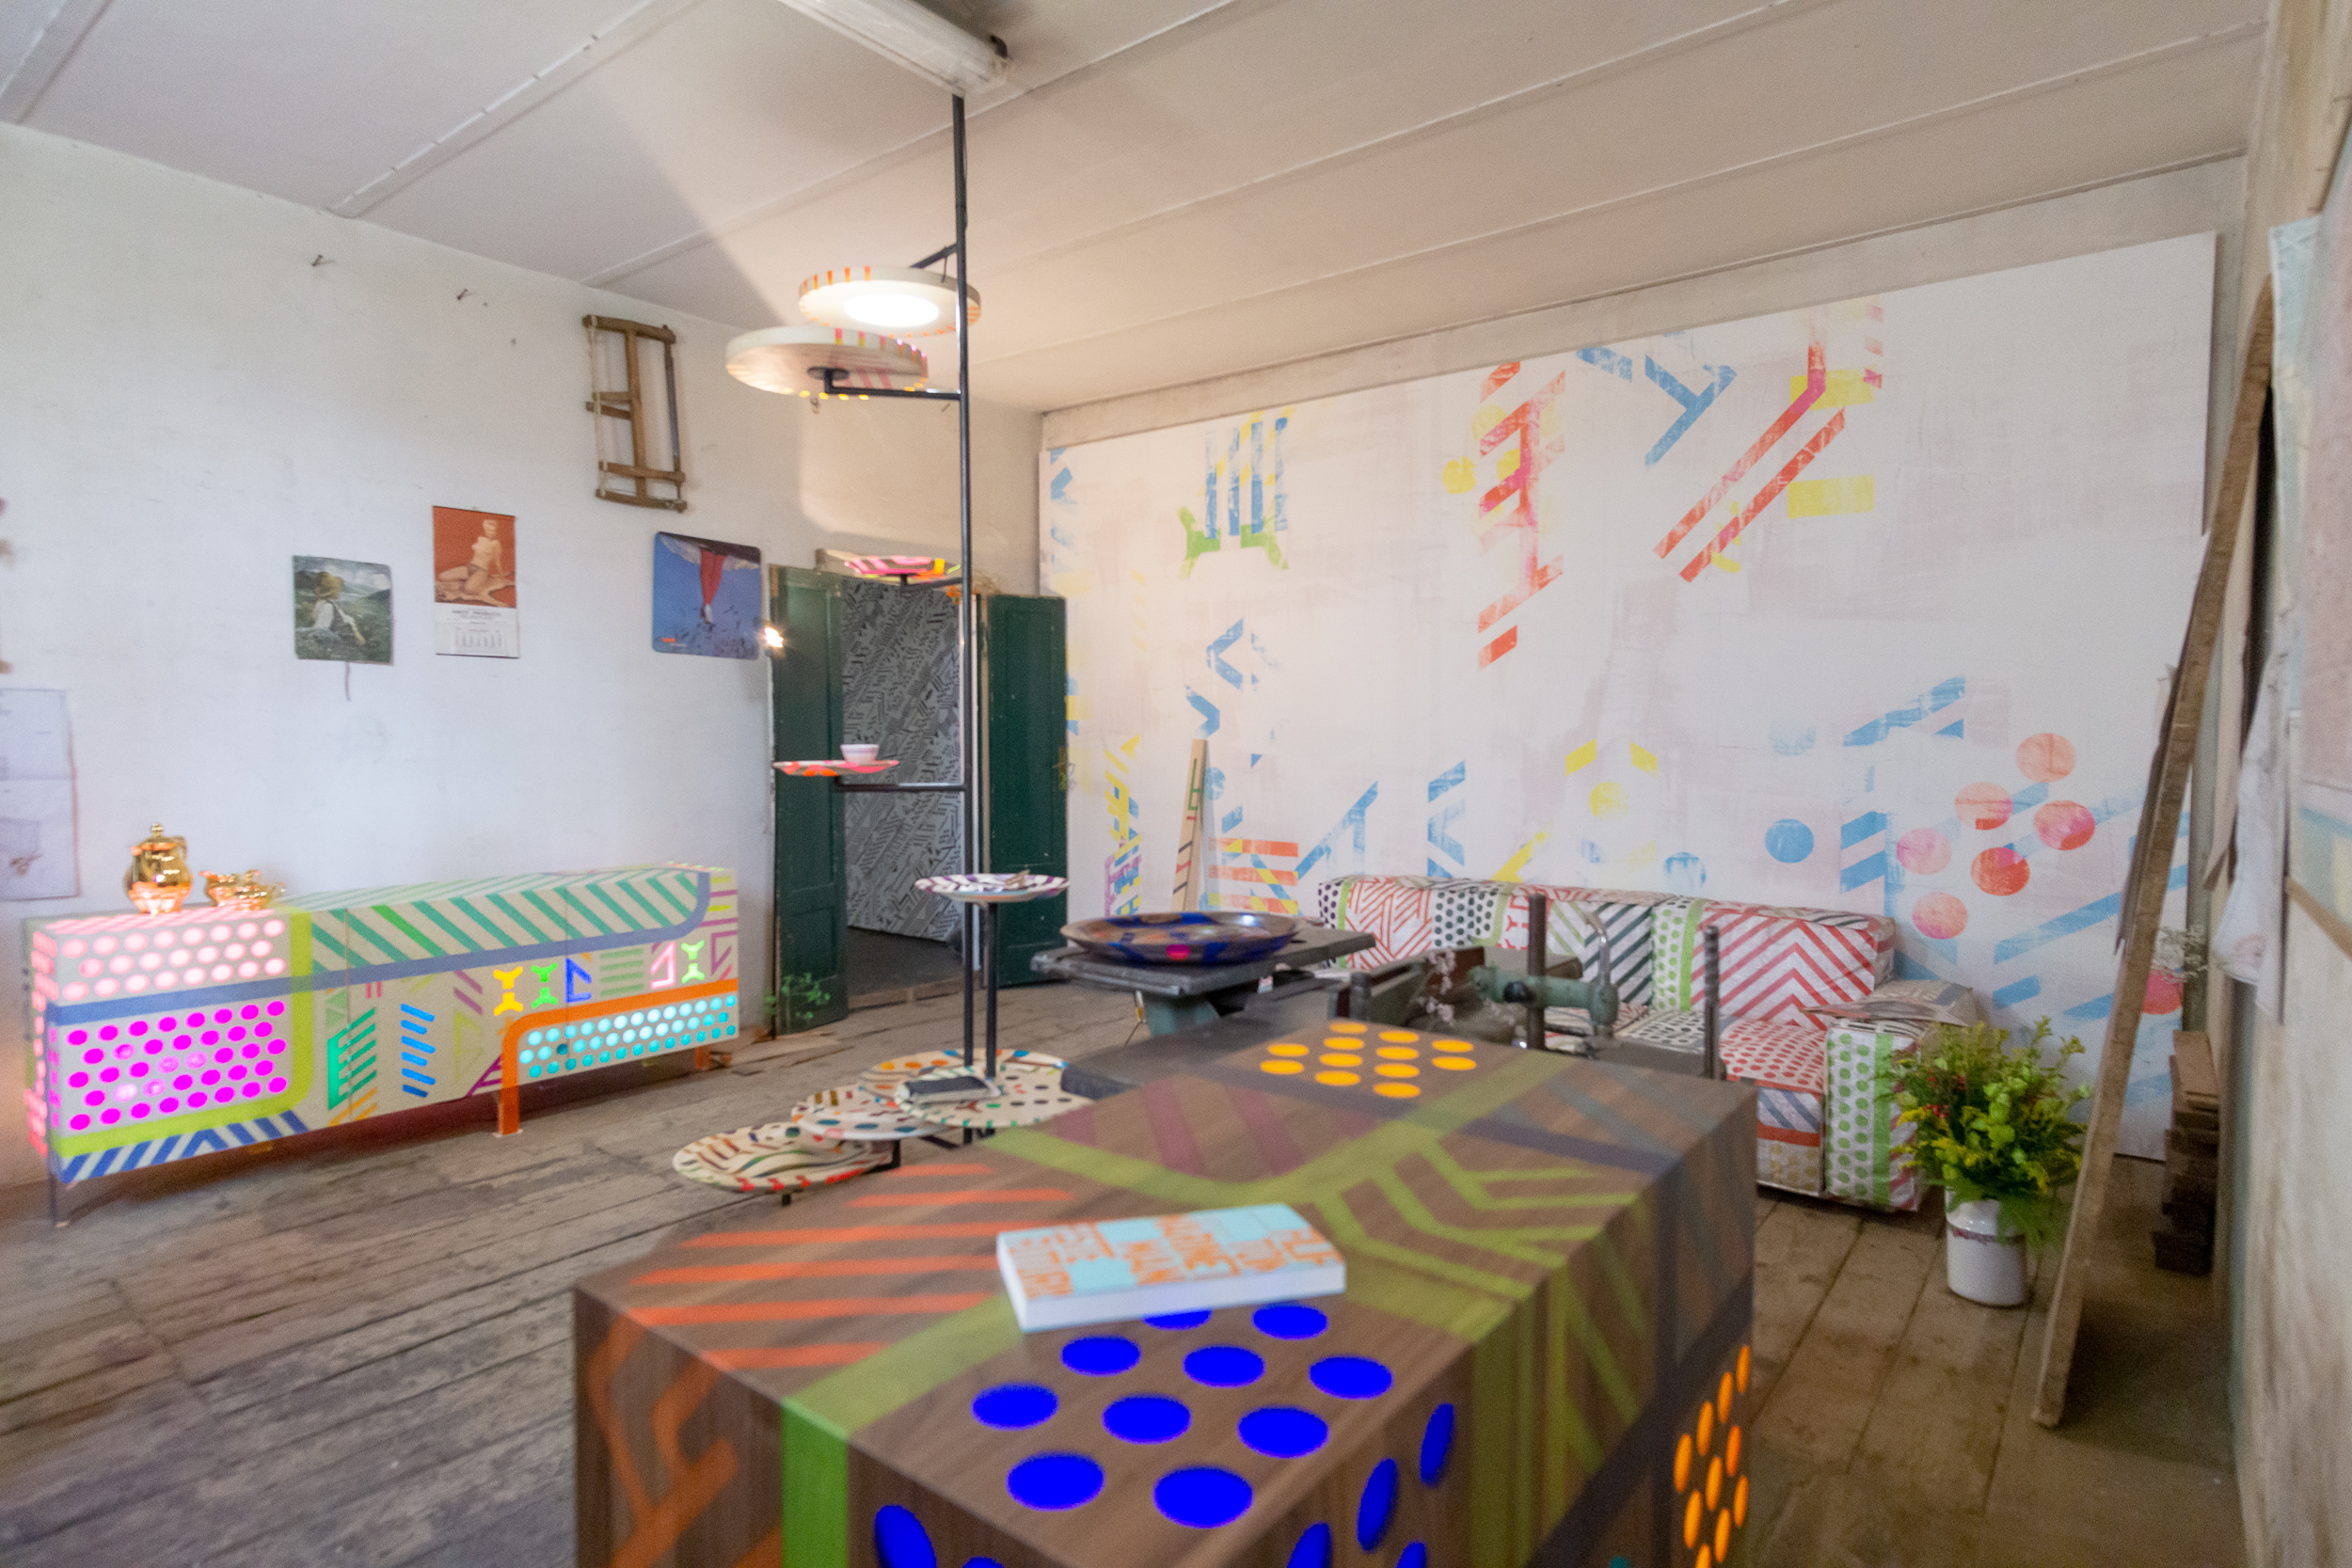 "Digitally printed wallpaper in The Forgotten Laboratory,"" Markus Benesch Creates/Curious Boy."